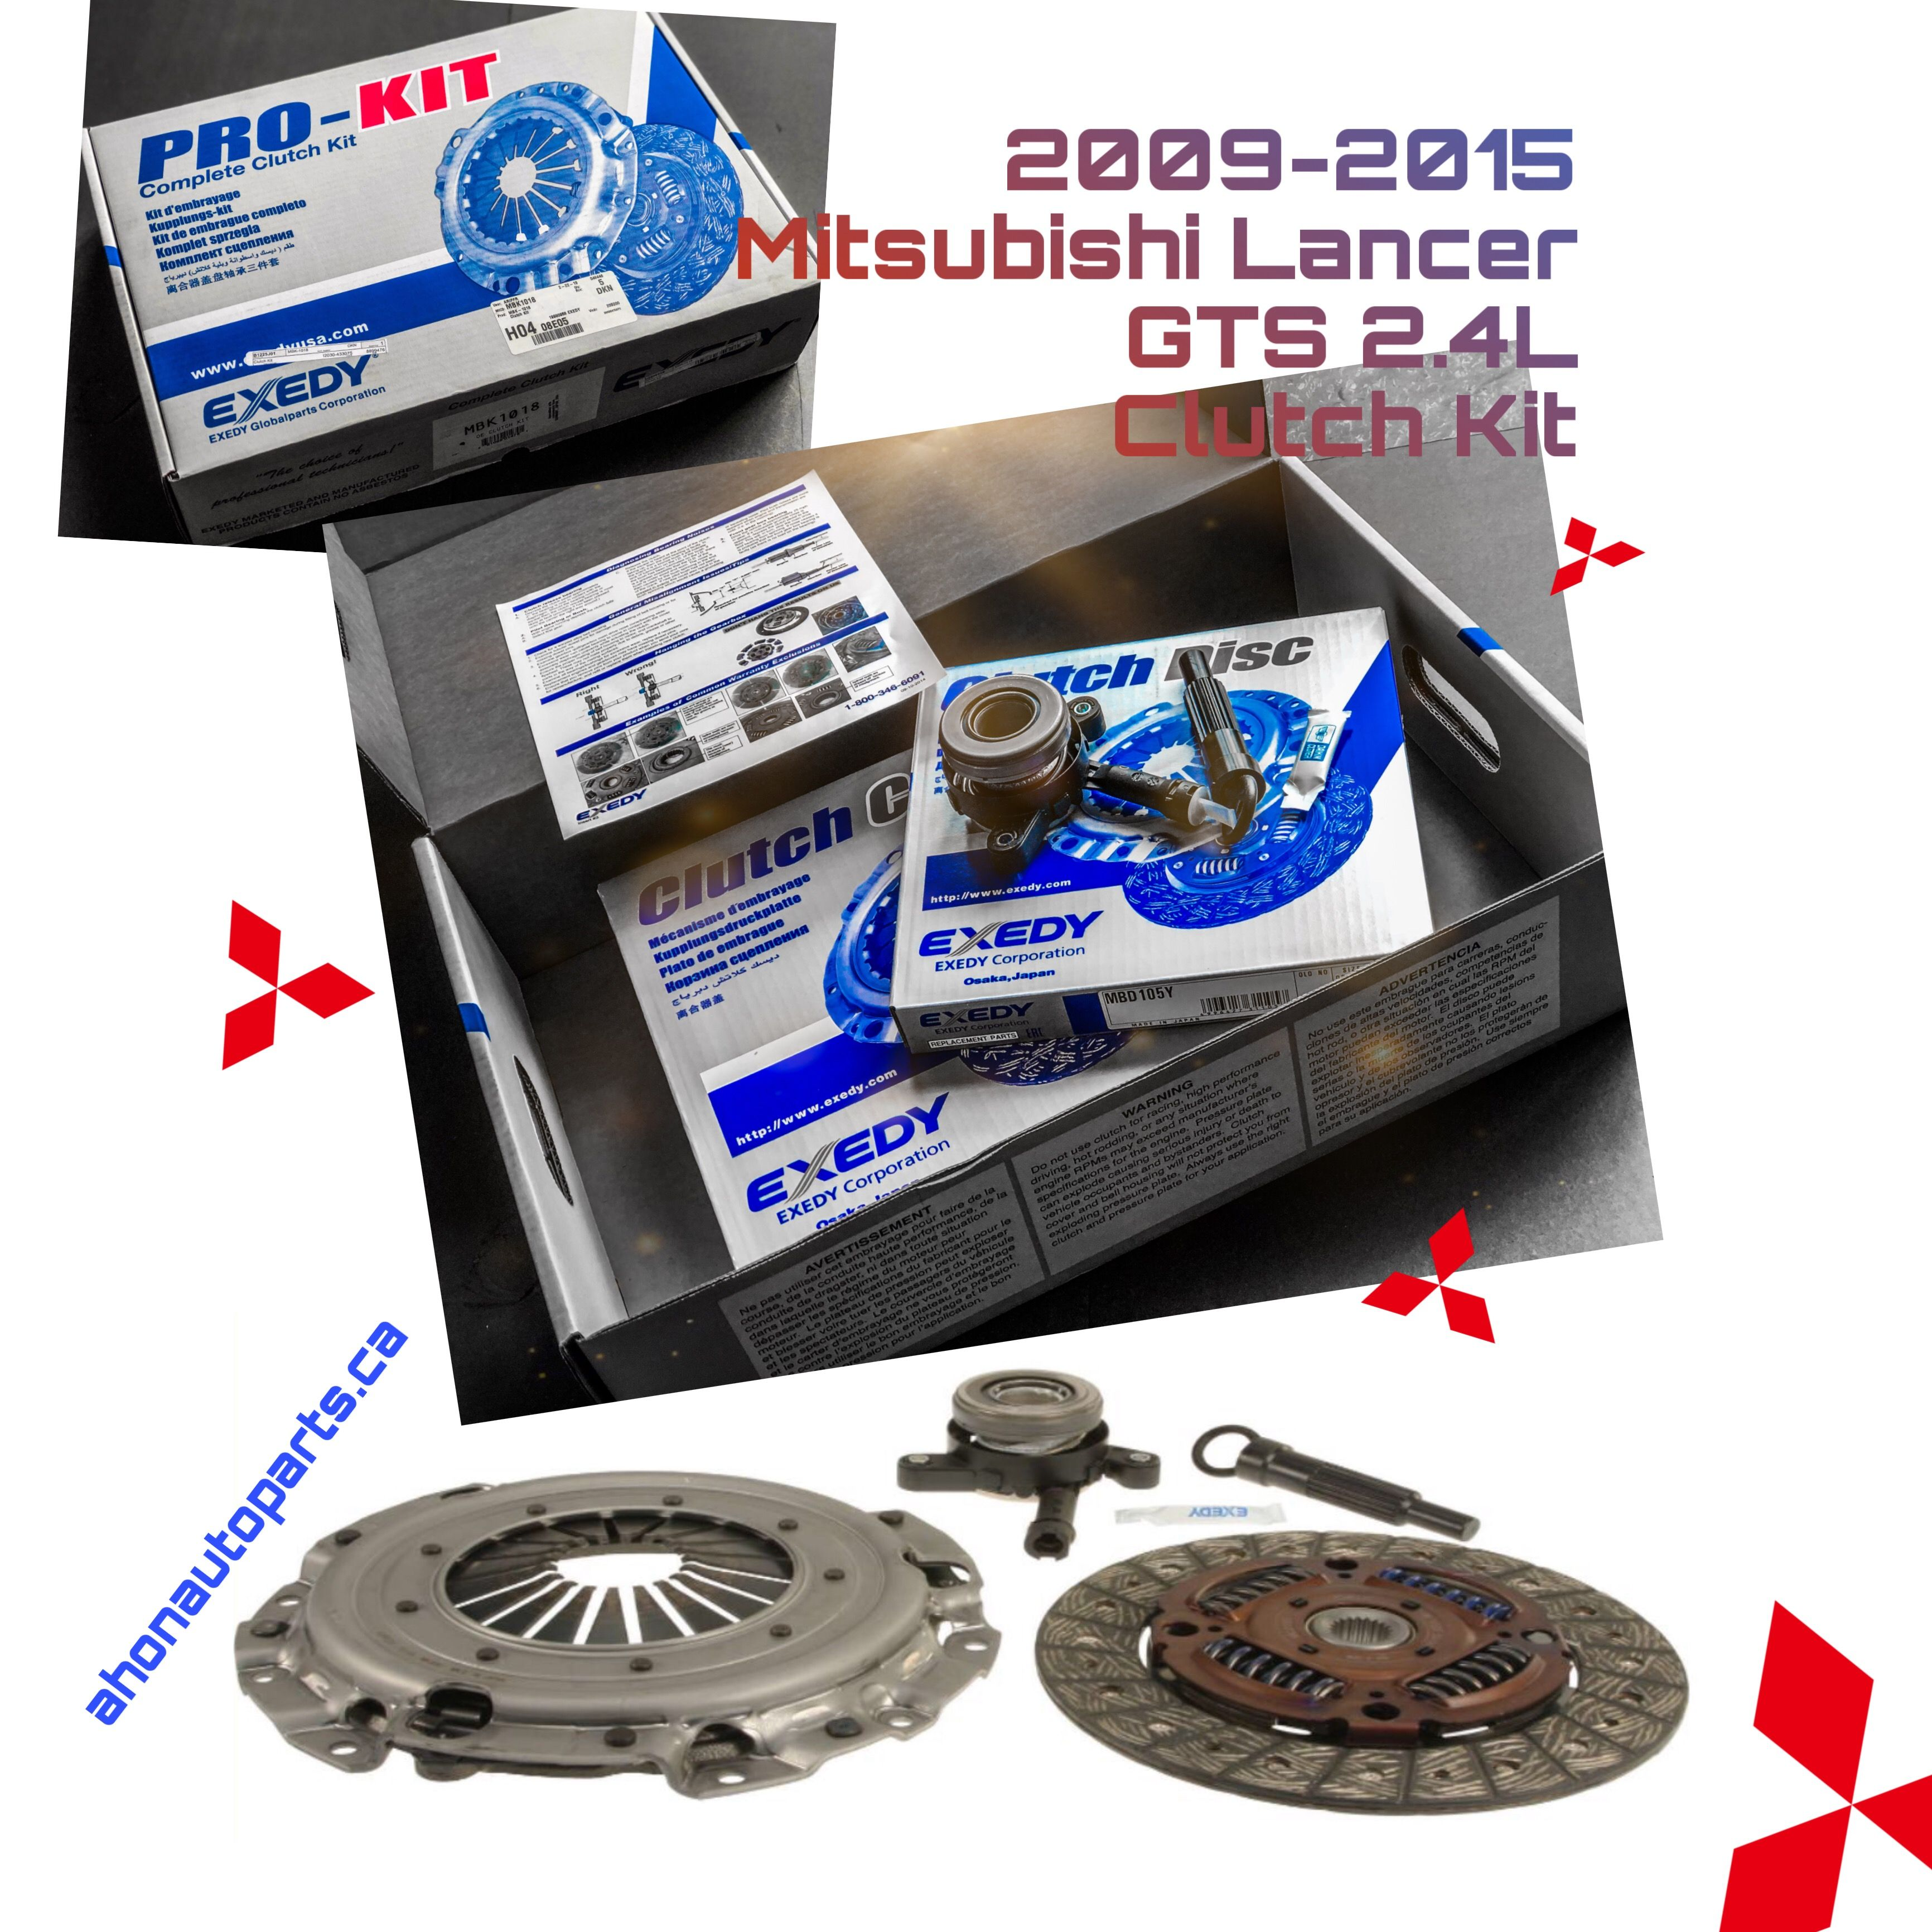 Clutch Kit by Exedy #MBK1018 This product fits: 2009-2015